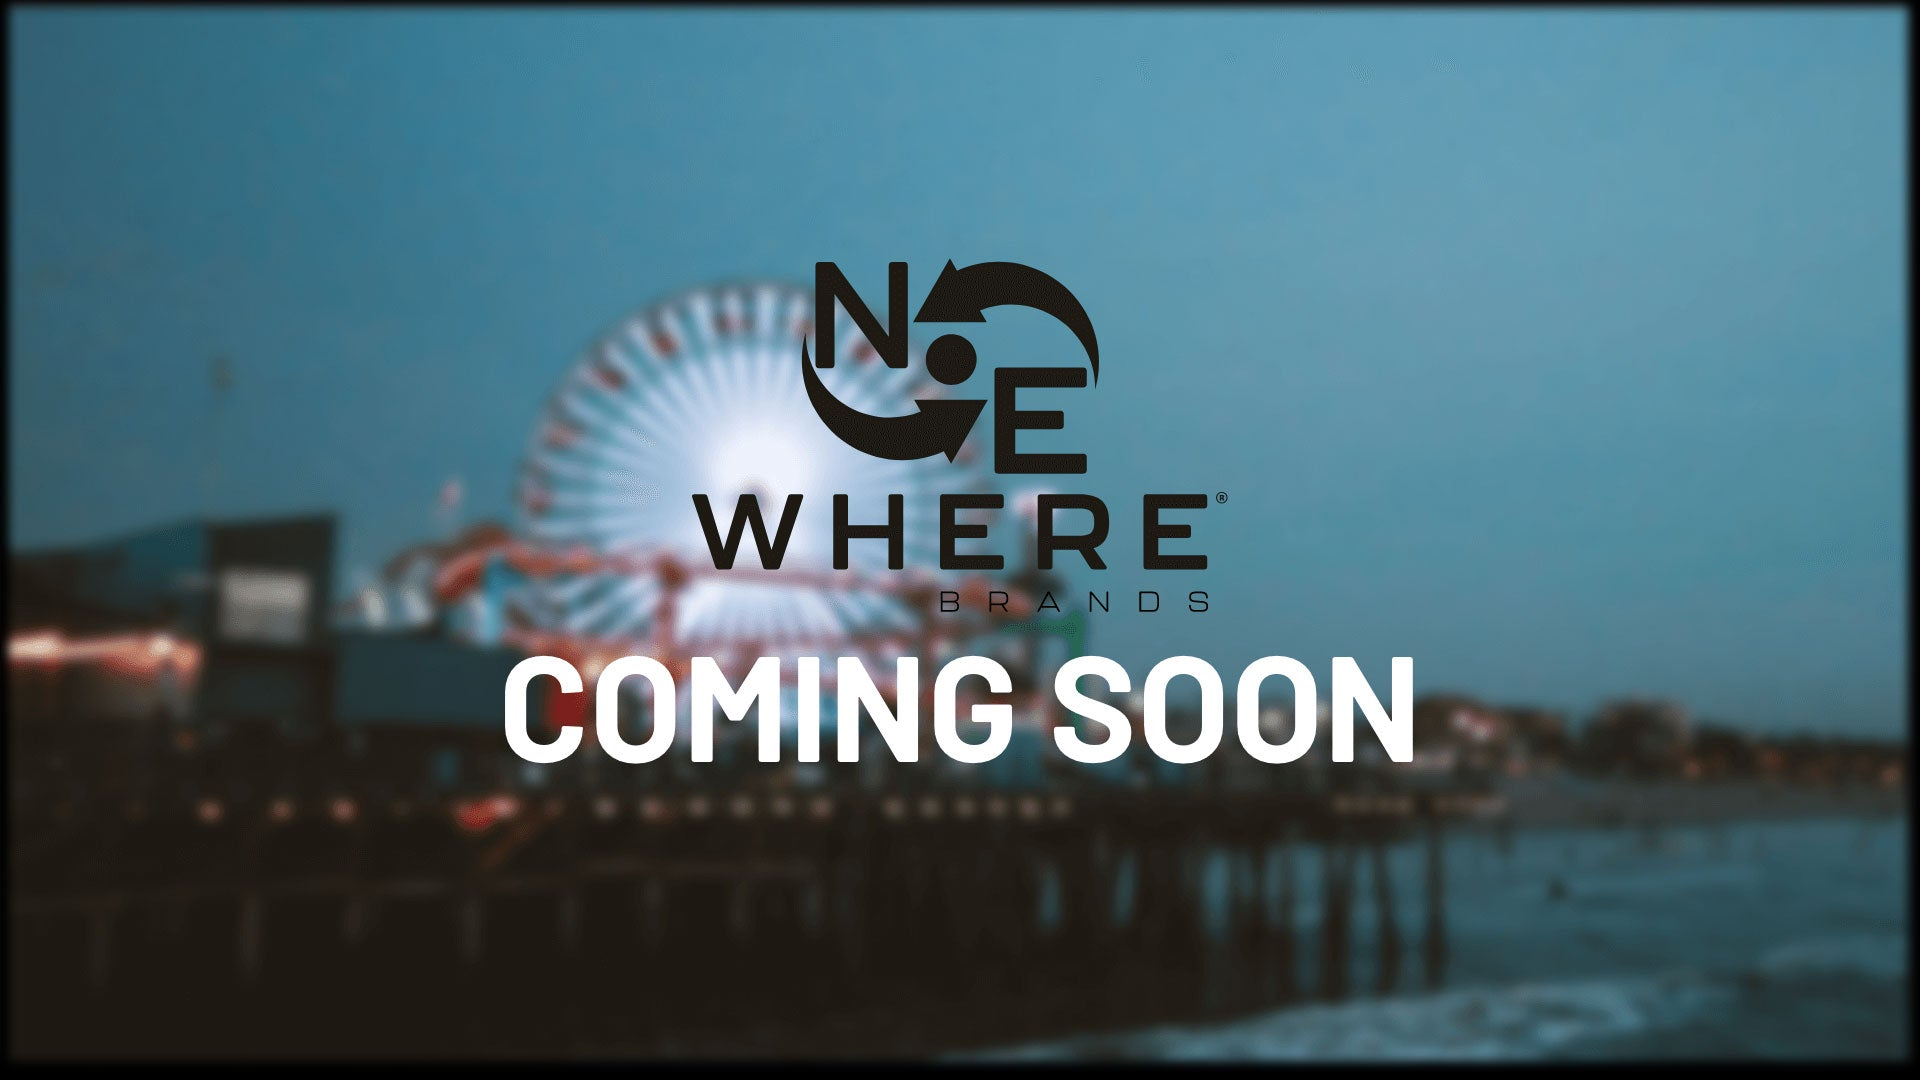 NEwhere.com Coming Soon